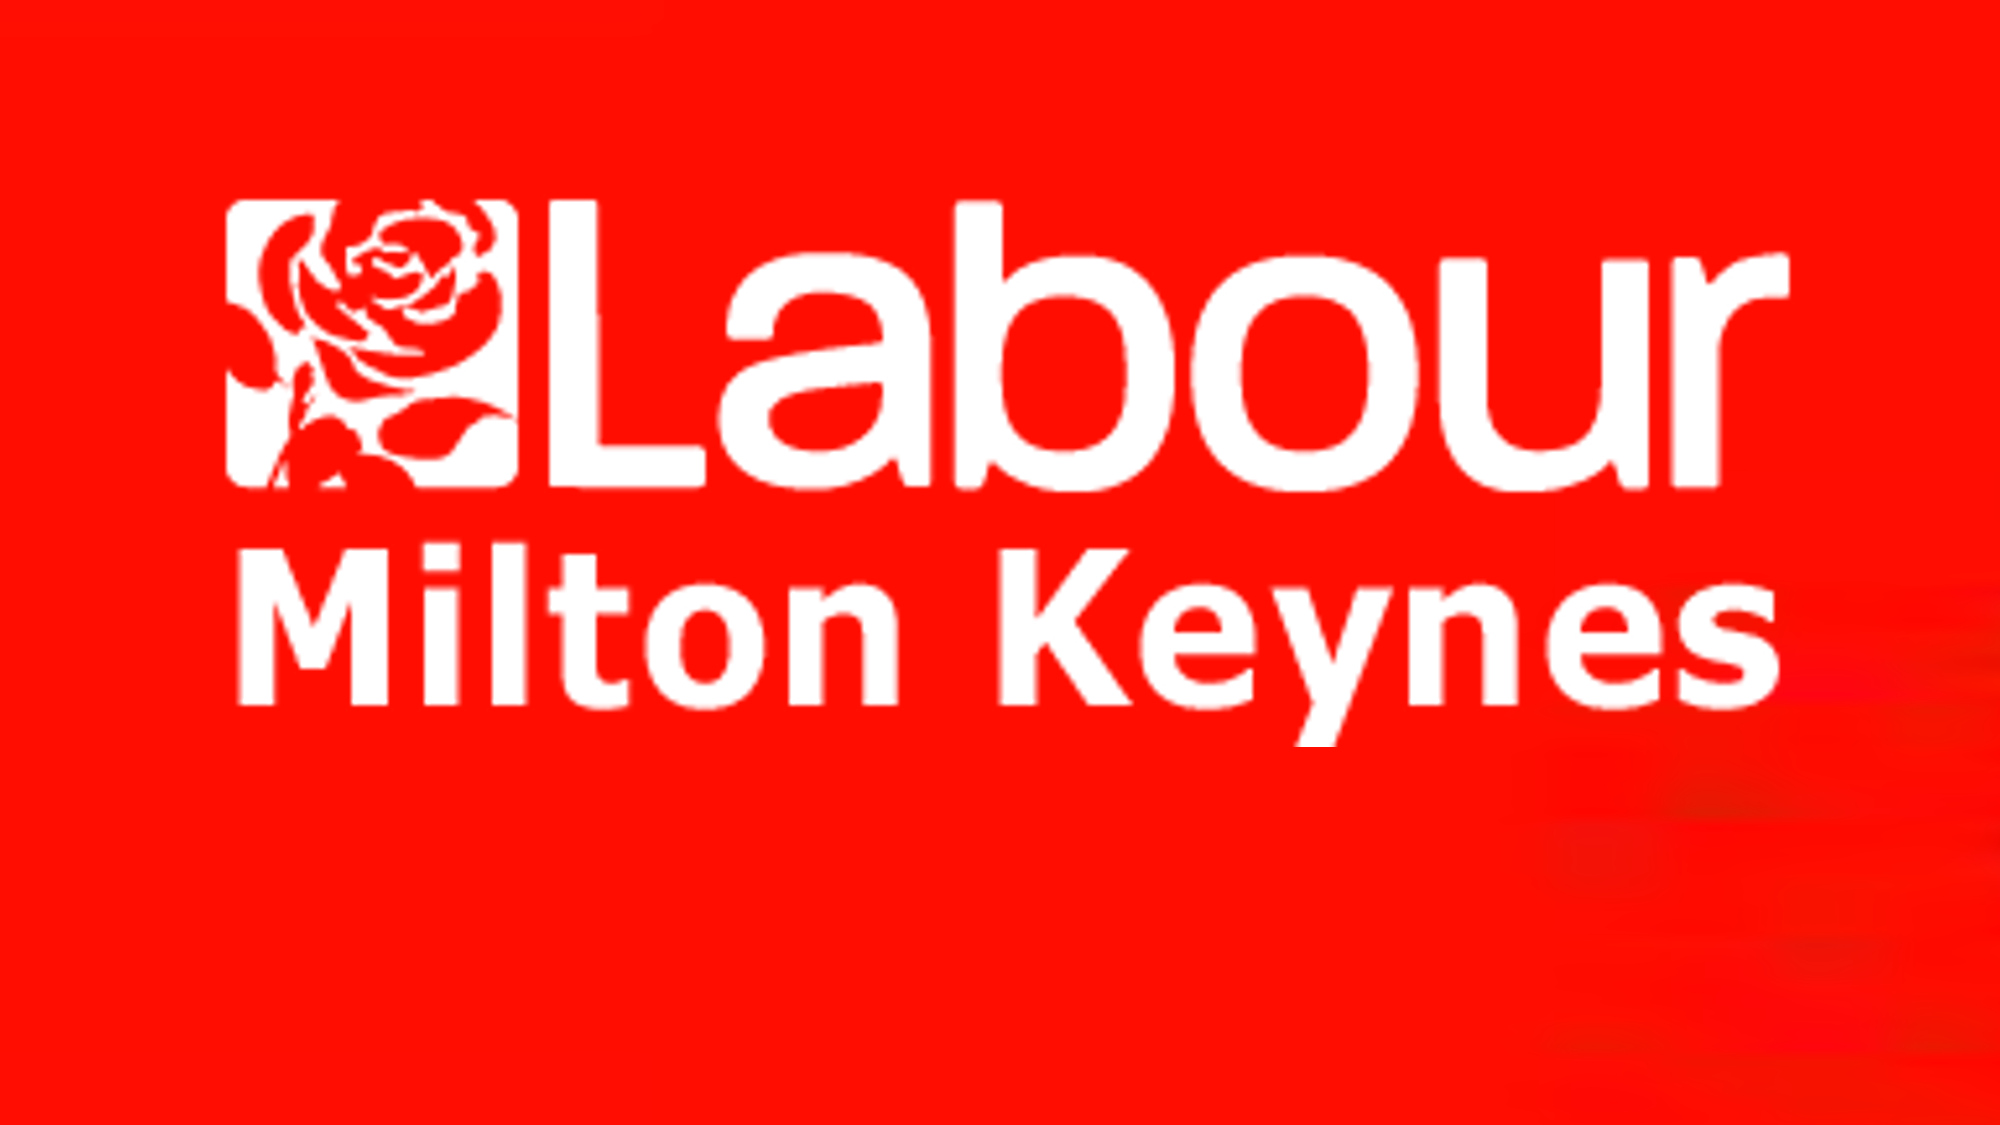 MK_Labour_name_image.png